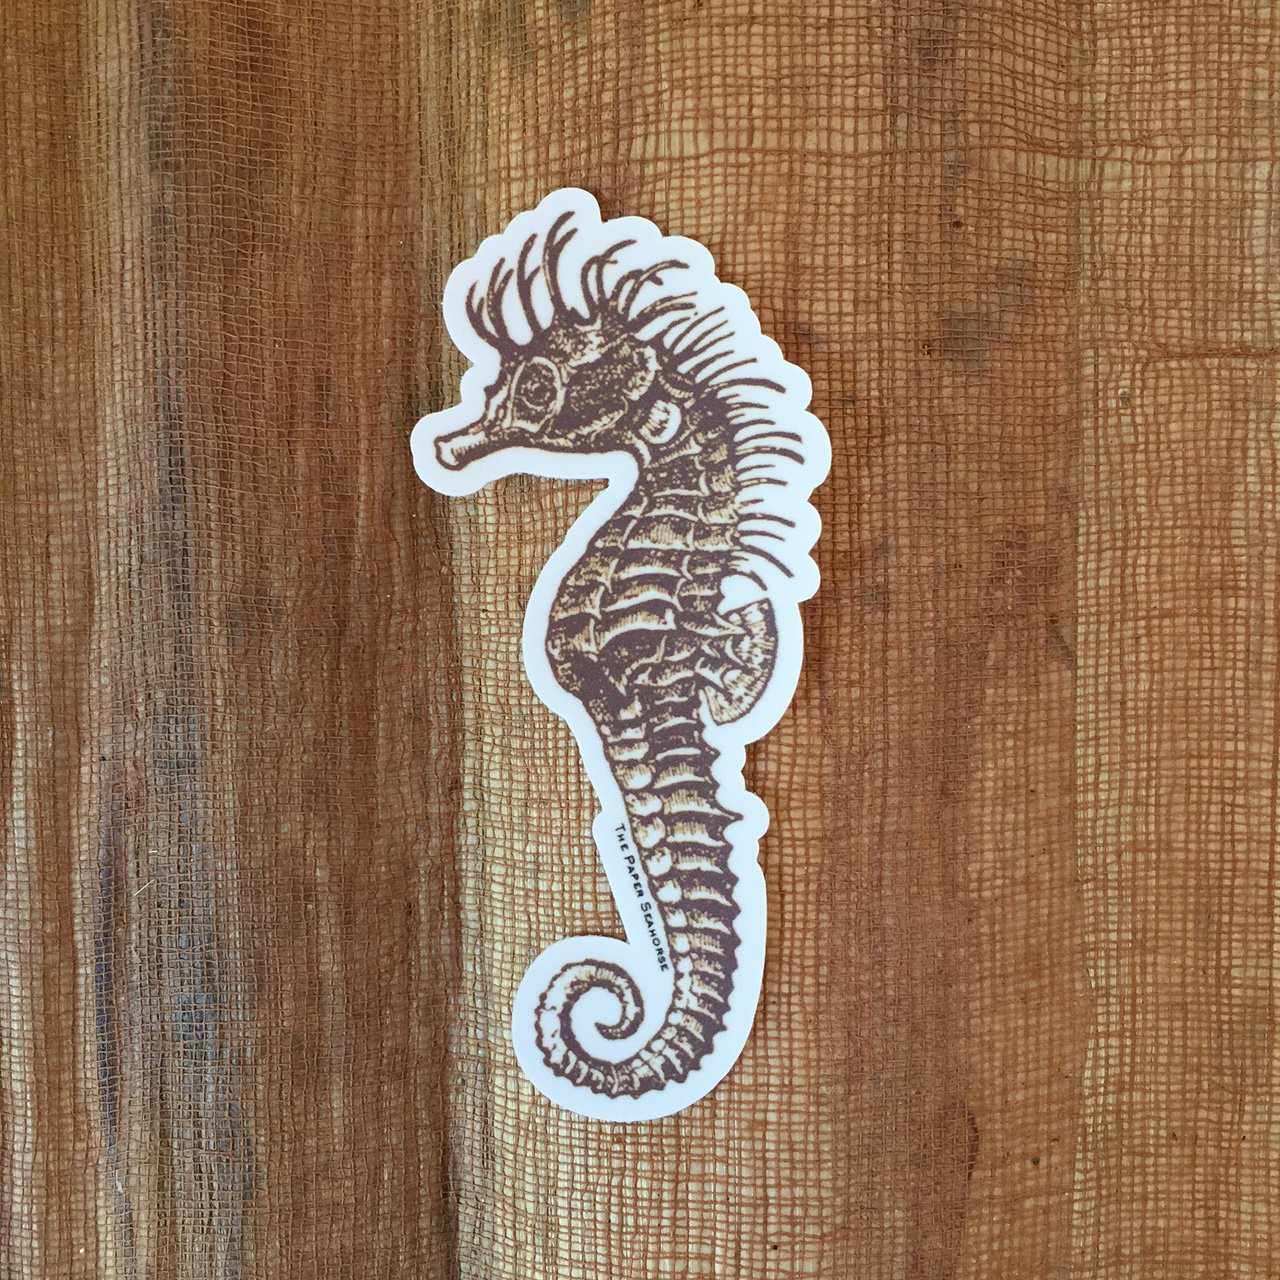 Paper Seahorse Sticker-Accessories-The Paper Seahorse-The Paper Seahorse